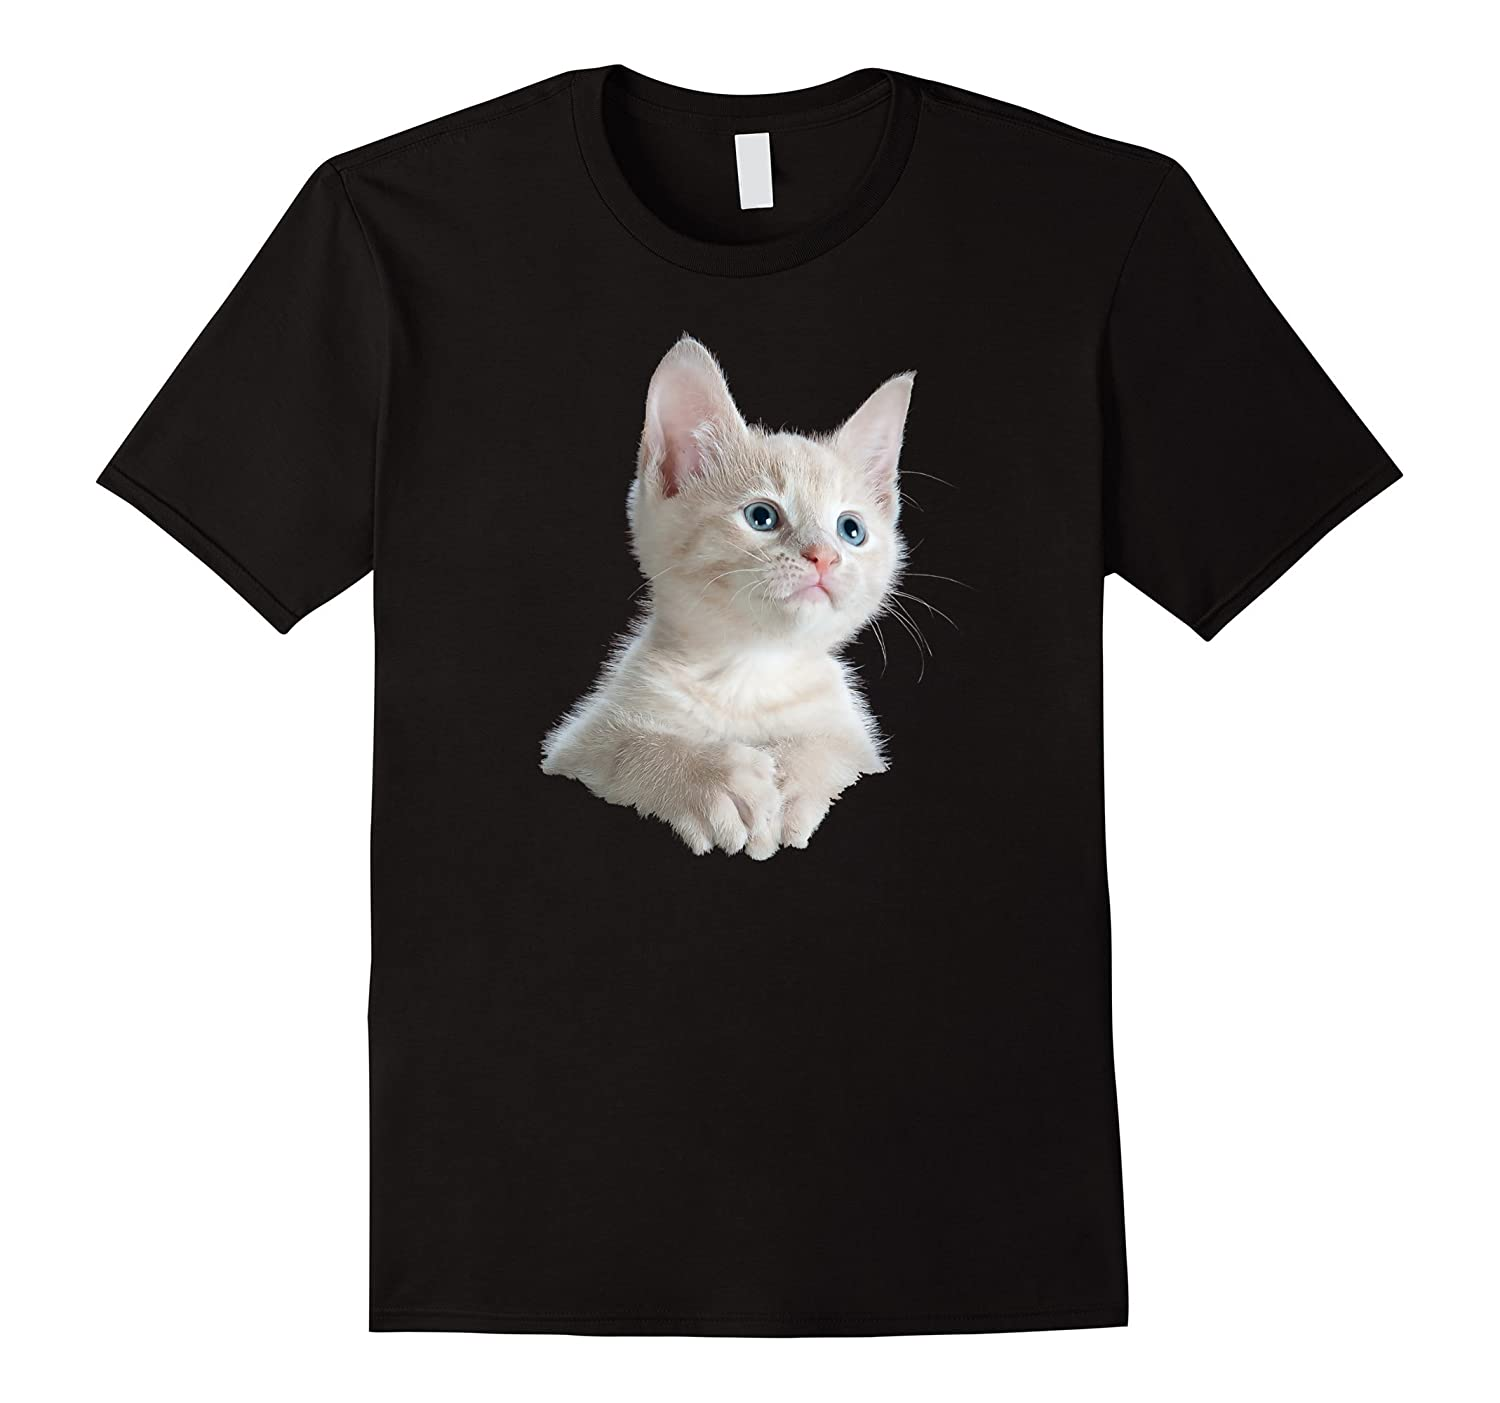 Animal View T-Shirts Cute White Kitten Humor TShirt-CD